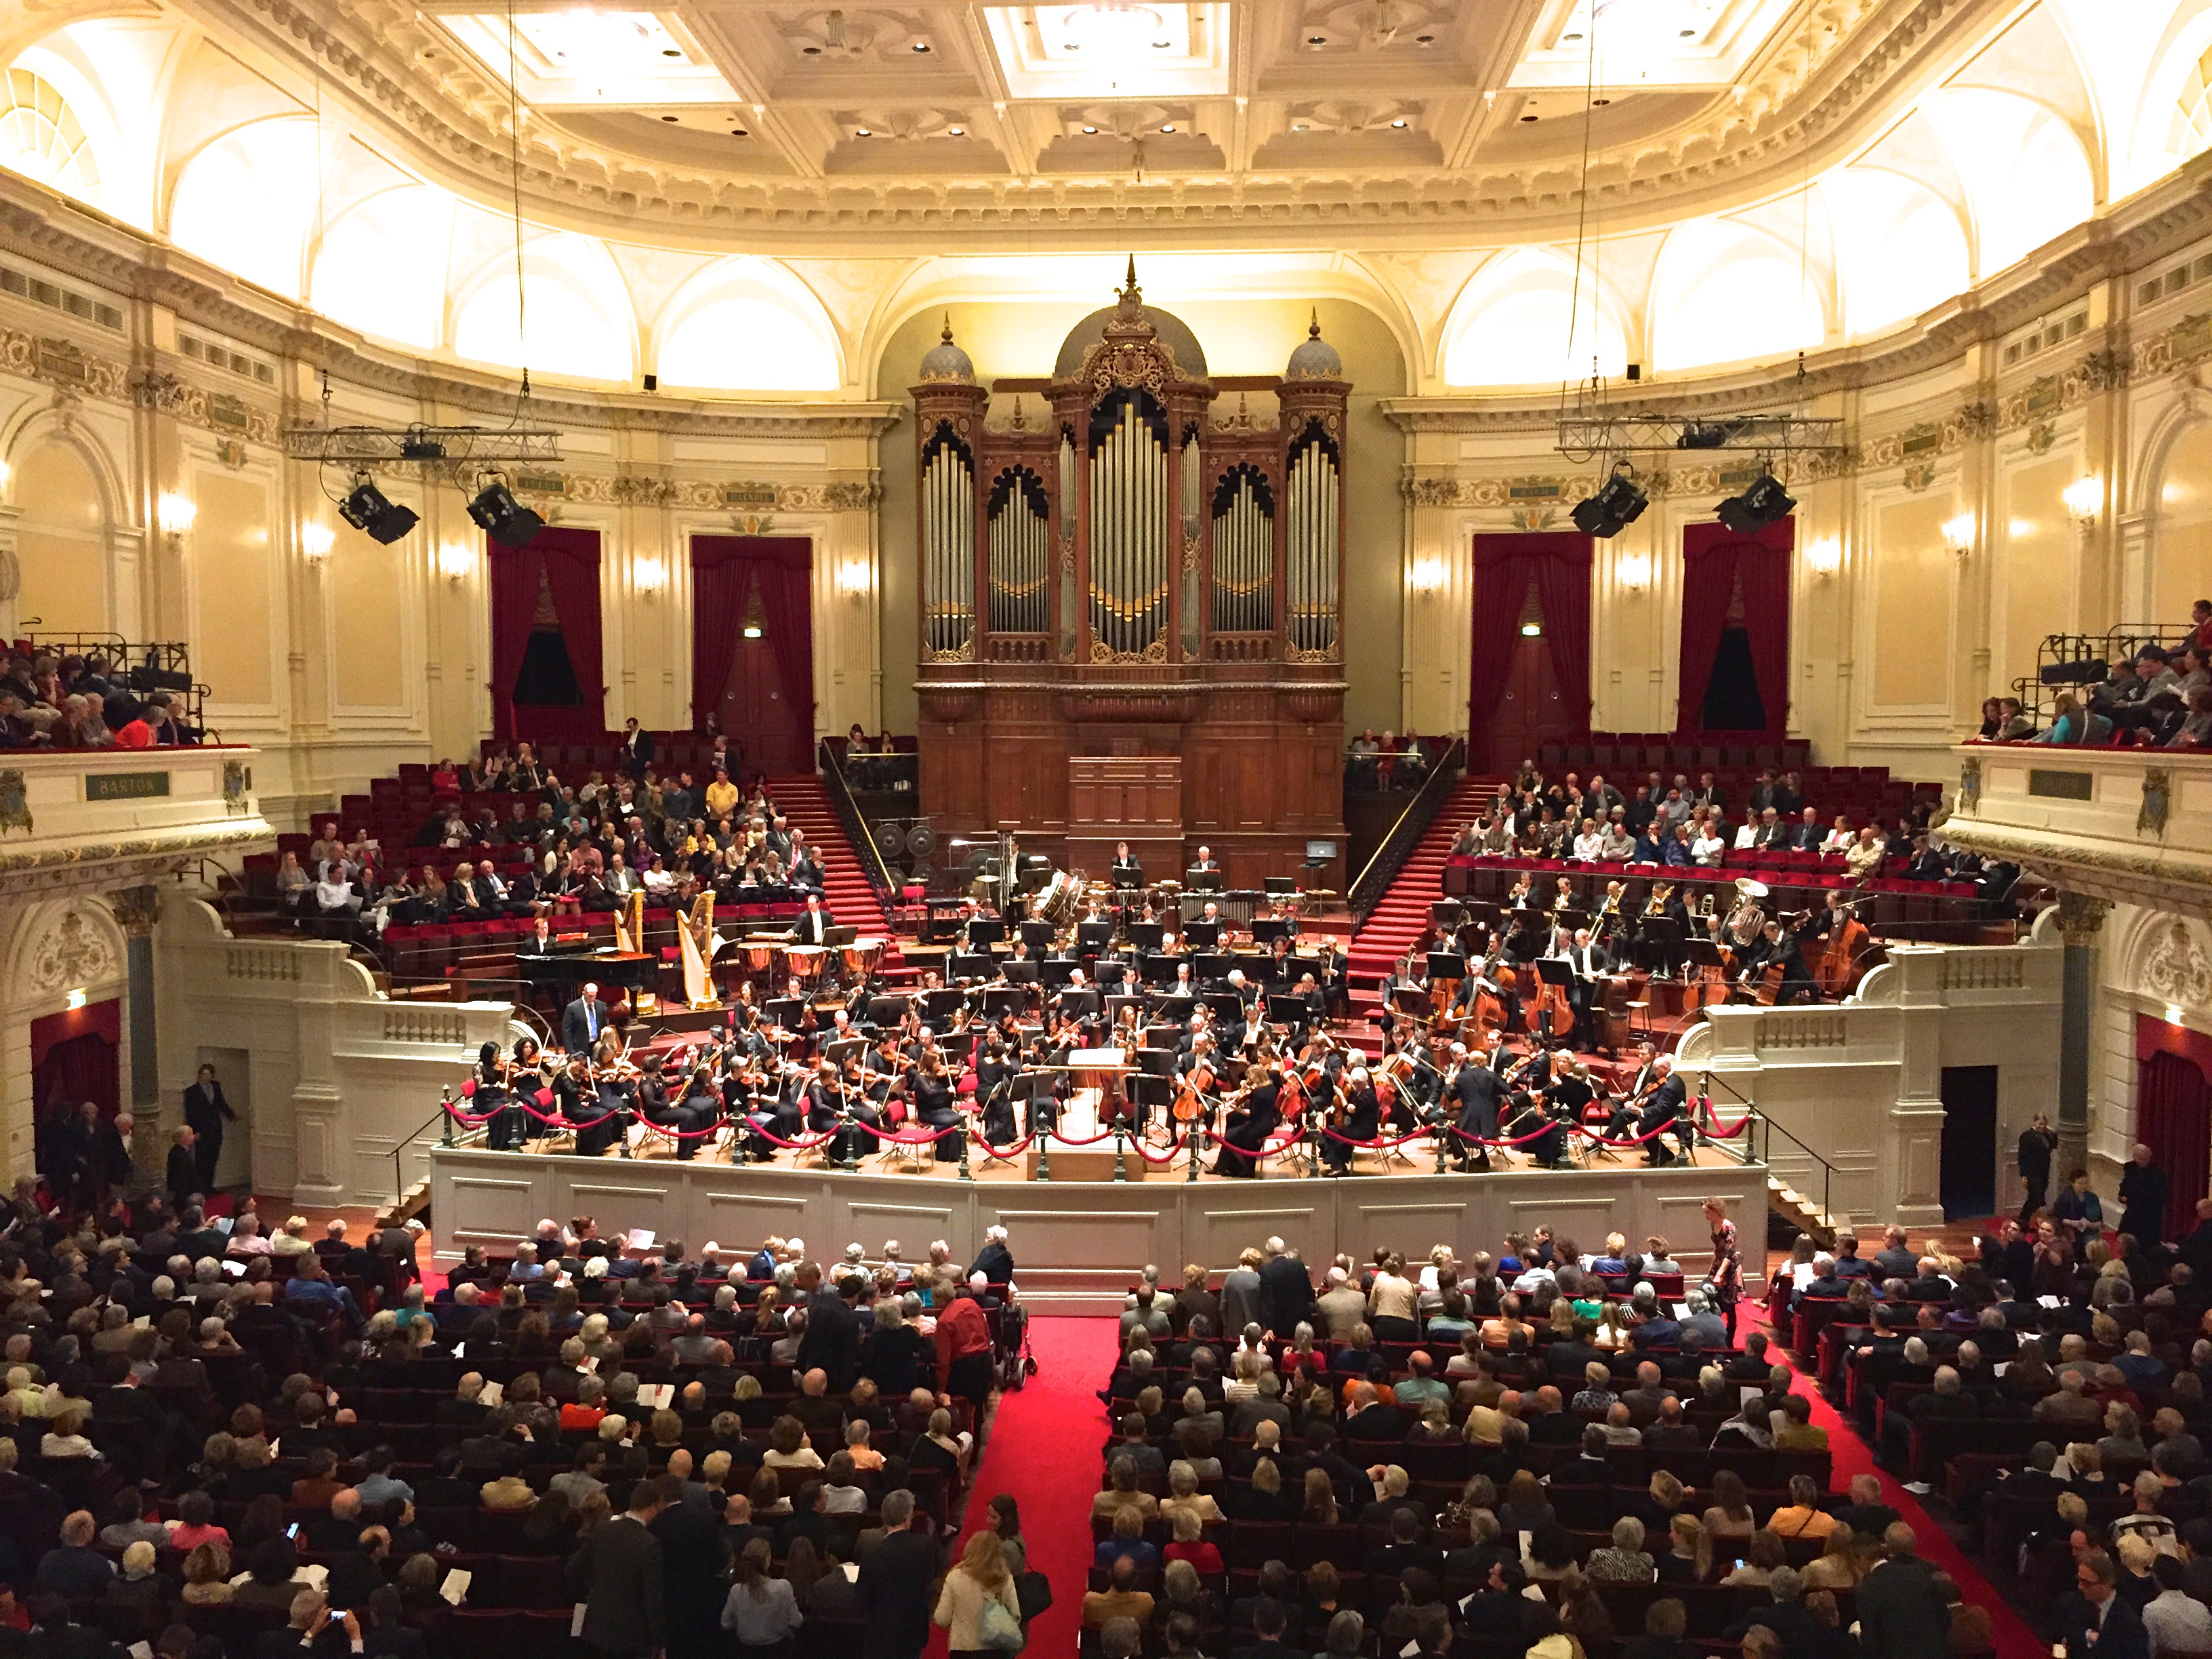 The breathtaking interior or Amsterdam's Concertgebouw.